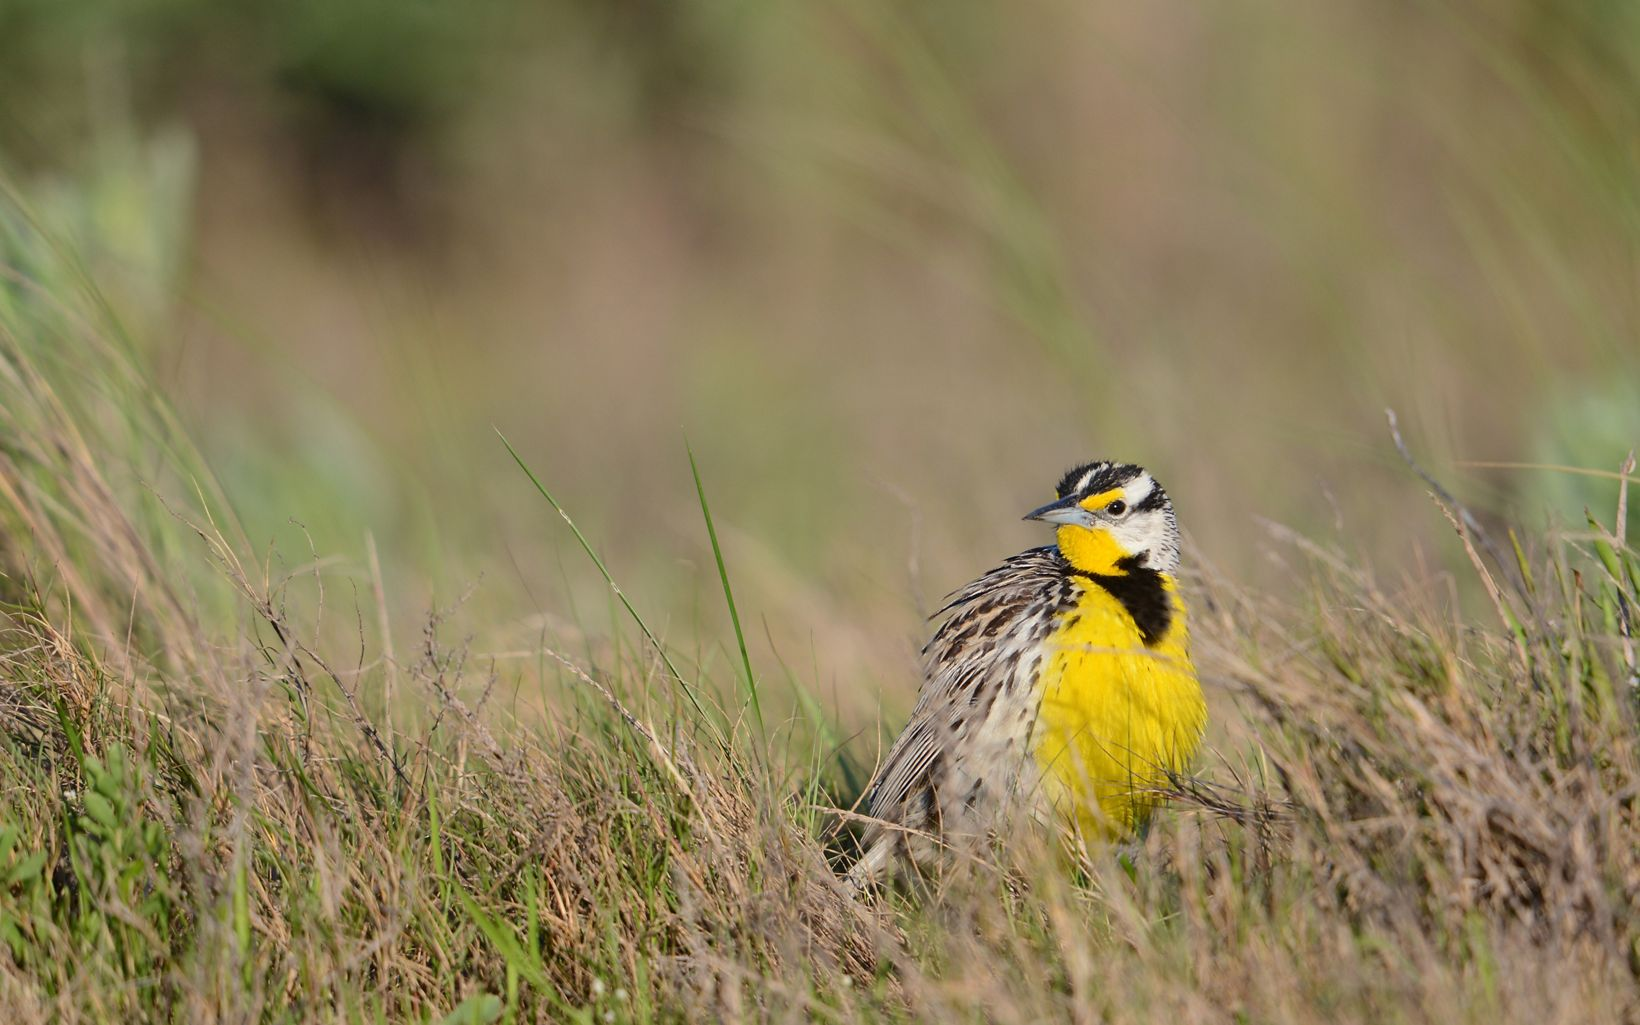 This is just one of the many grassland bird species whose populations are declining rapidly.